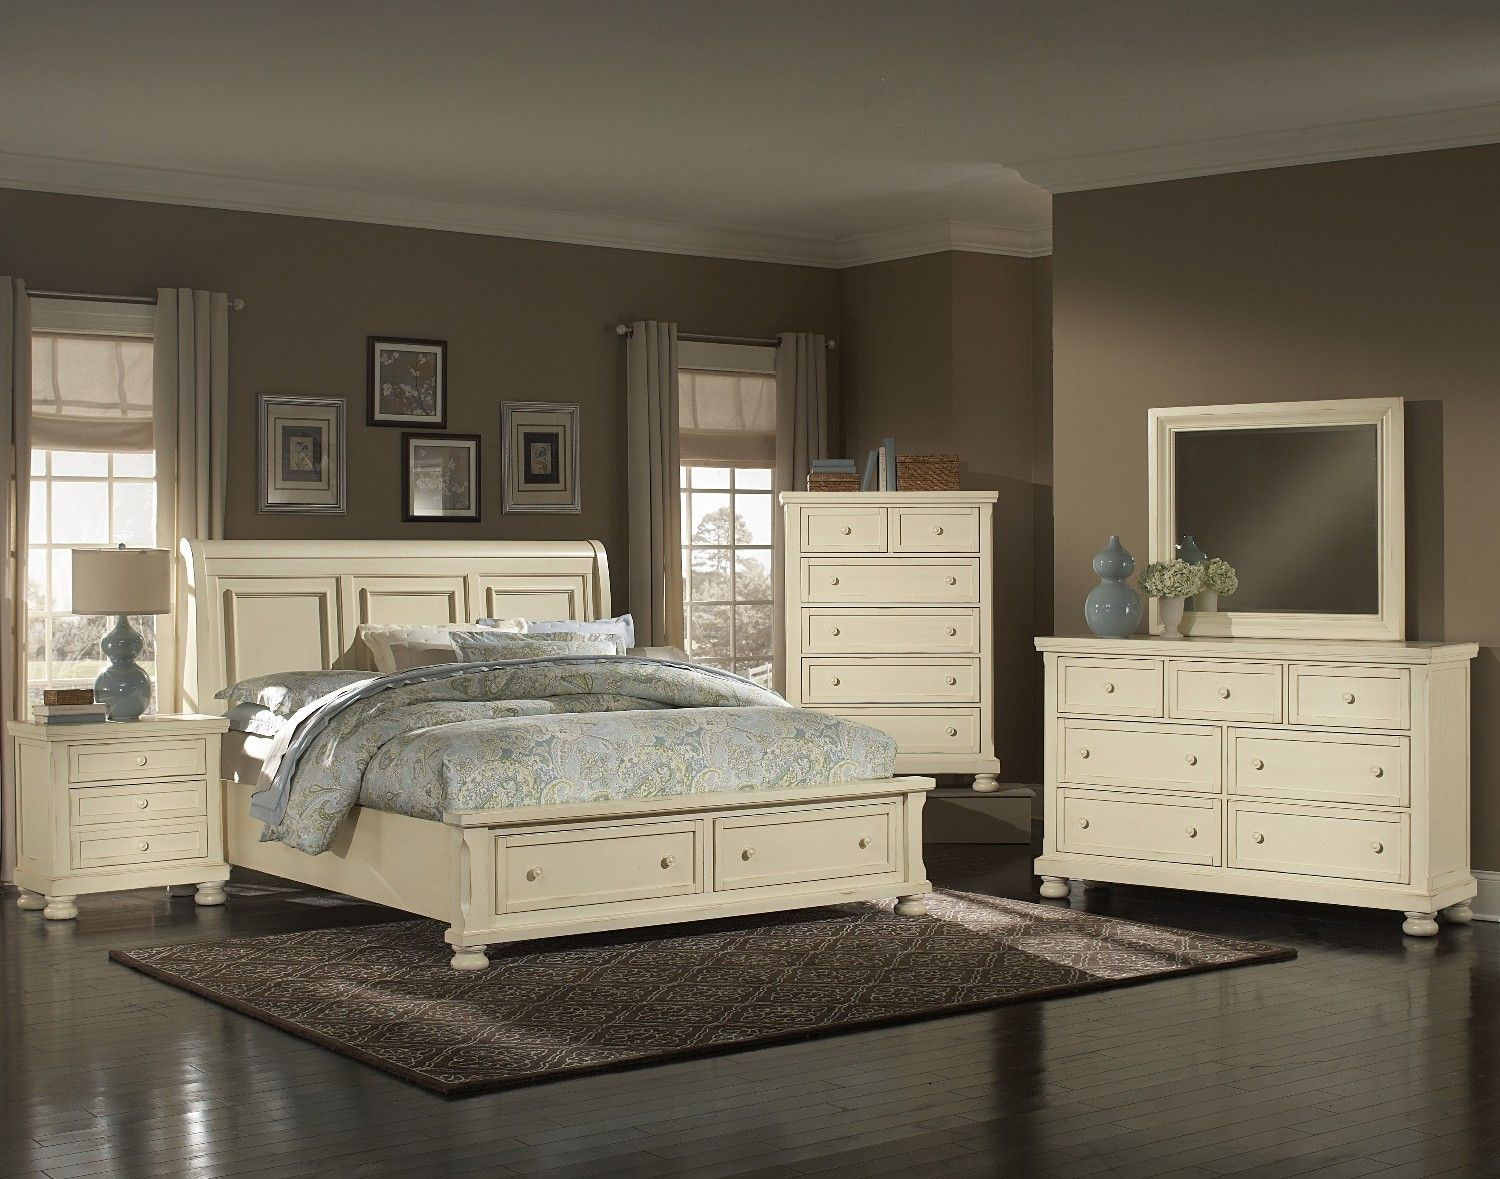 Bedroom Furniture ue Sleigh Bed ue Reflections Parchment Sleigh Bed